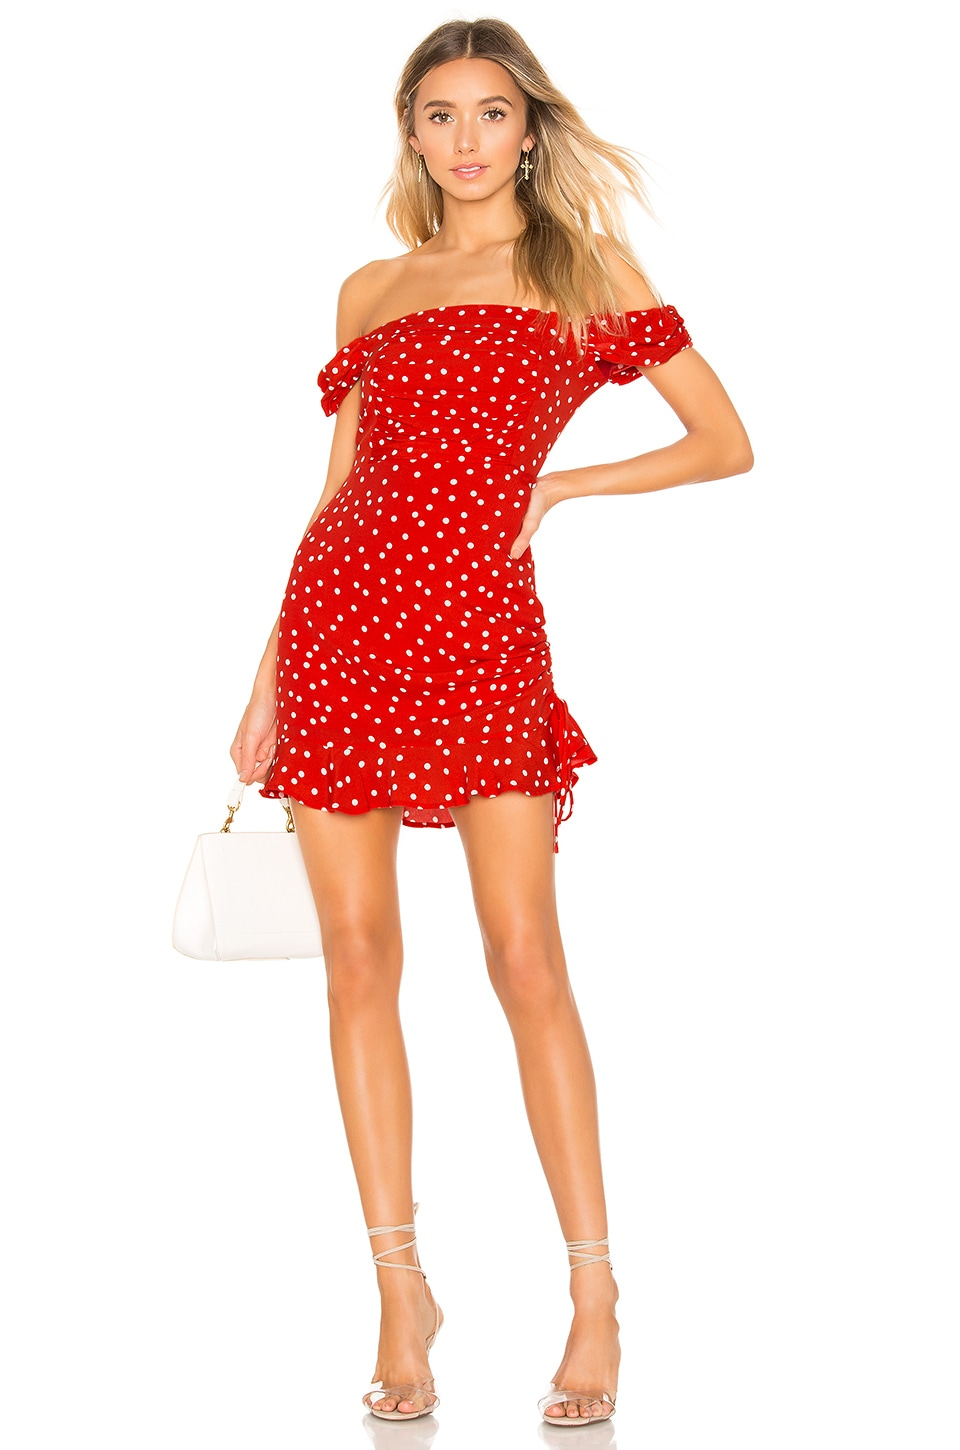 Privacy Please Rosario Mini Dress in Red & Ivory